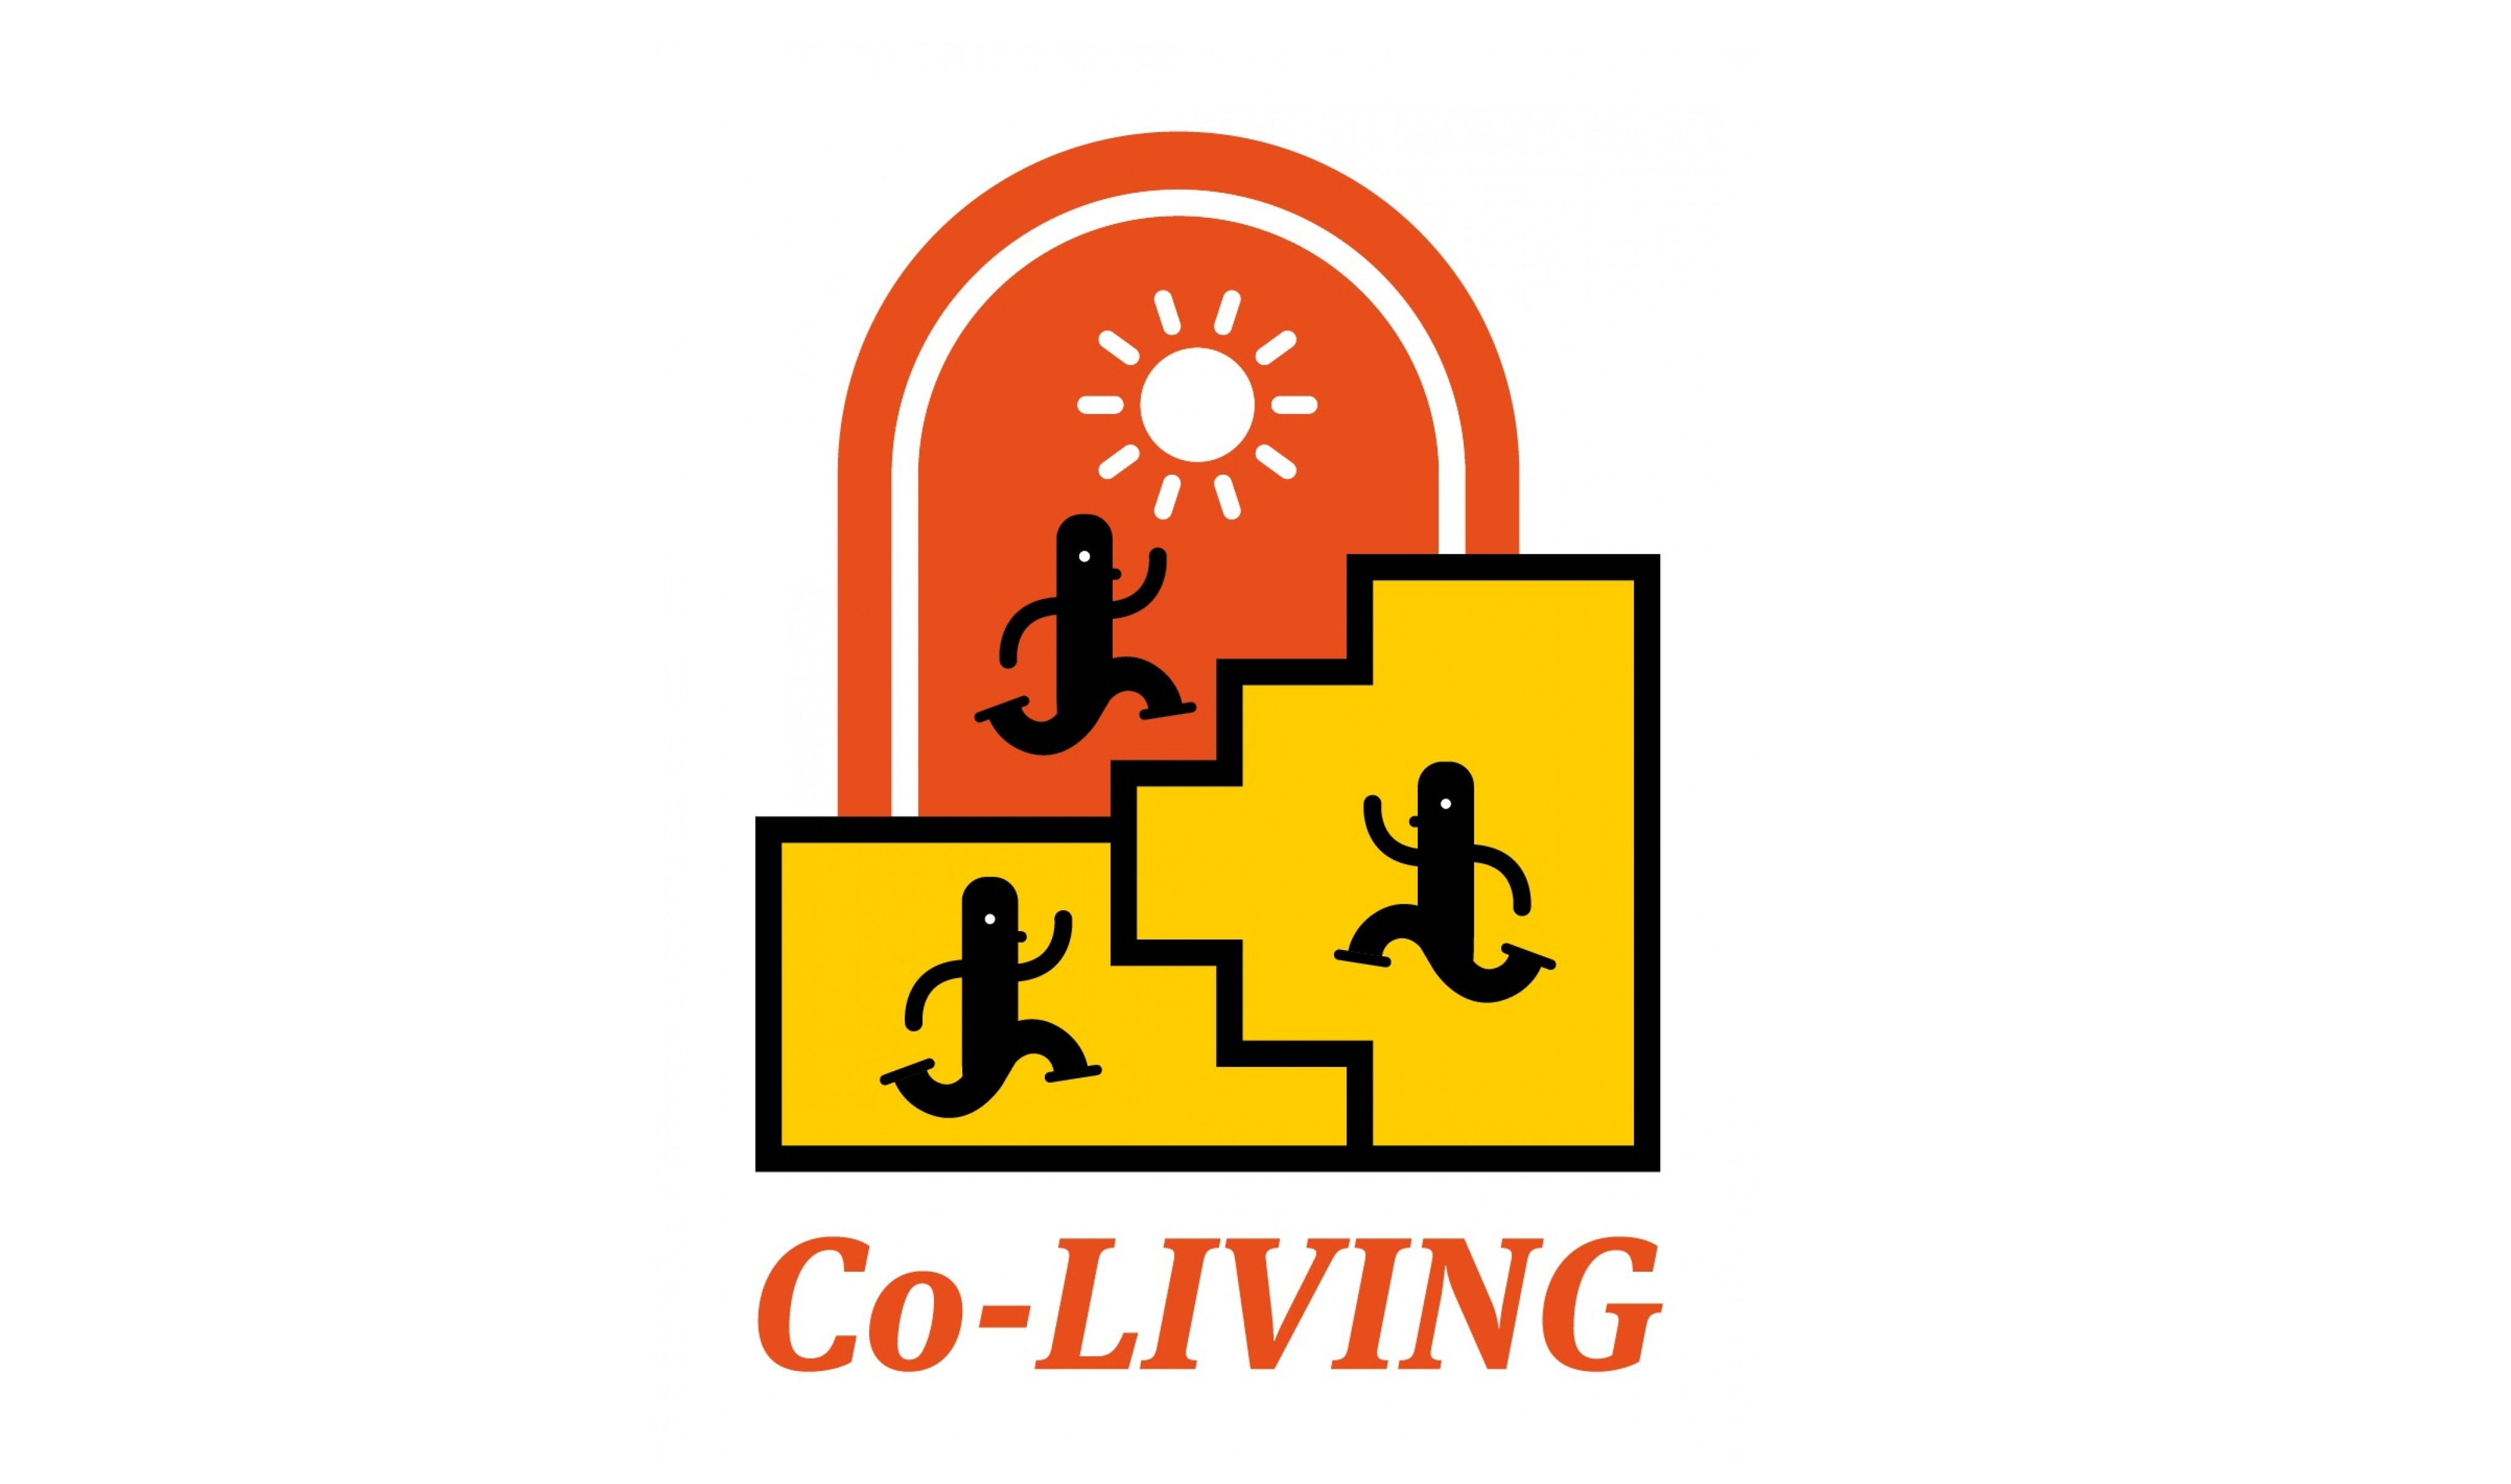 Vzw Co-living